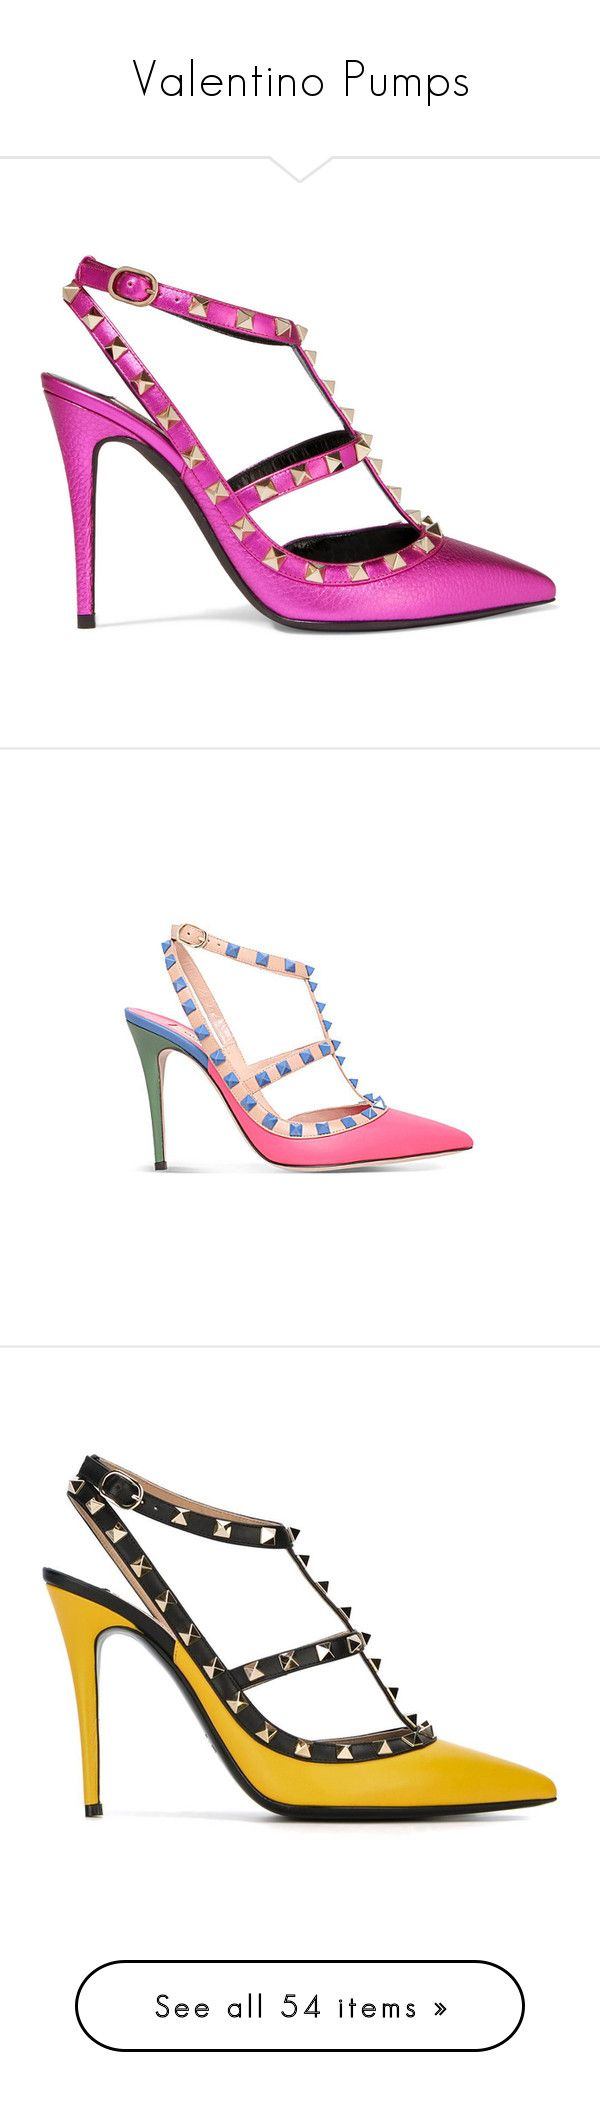 """Valentino Pumps"" by thedanishroyal on Polyvore featuring Pumps, shoes, valentino, pumps, heels, fuchsia, strappy high heel shoes, fuschia pumps, fuchsia pumps und fuschia shoes"